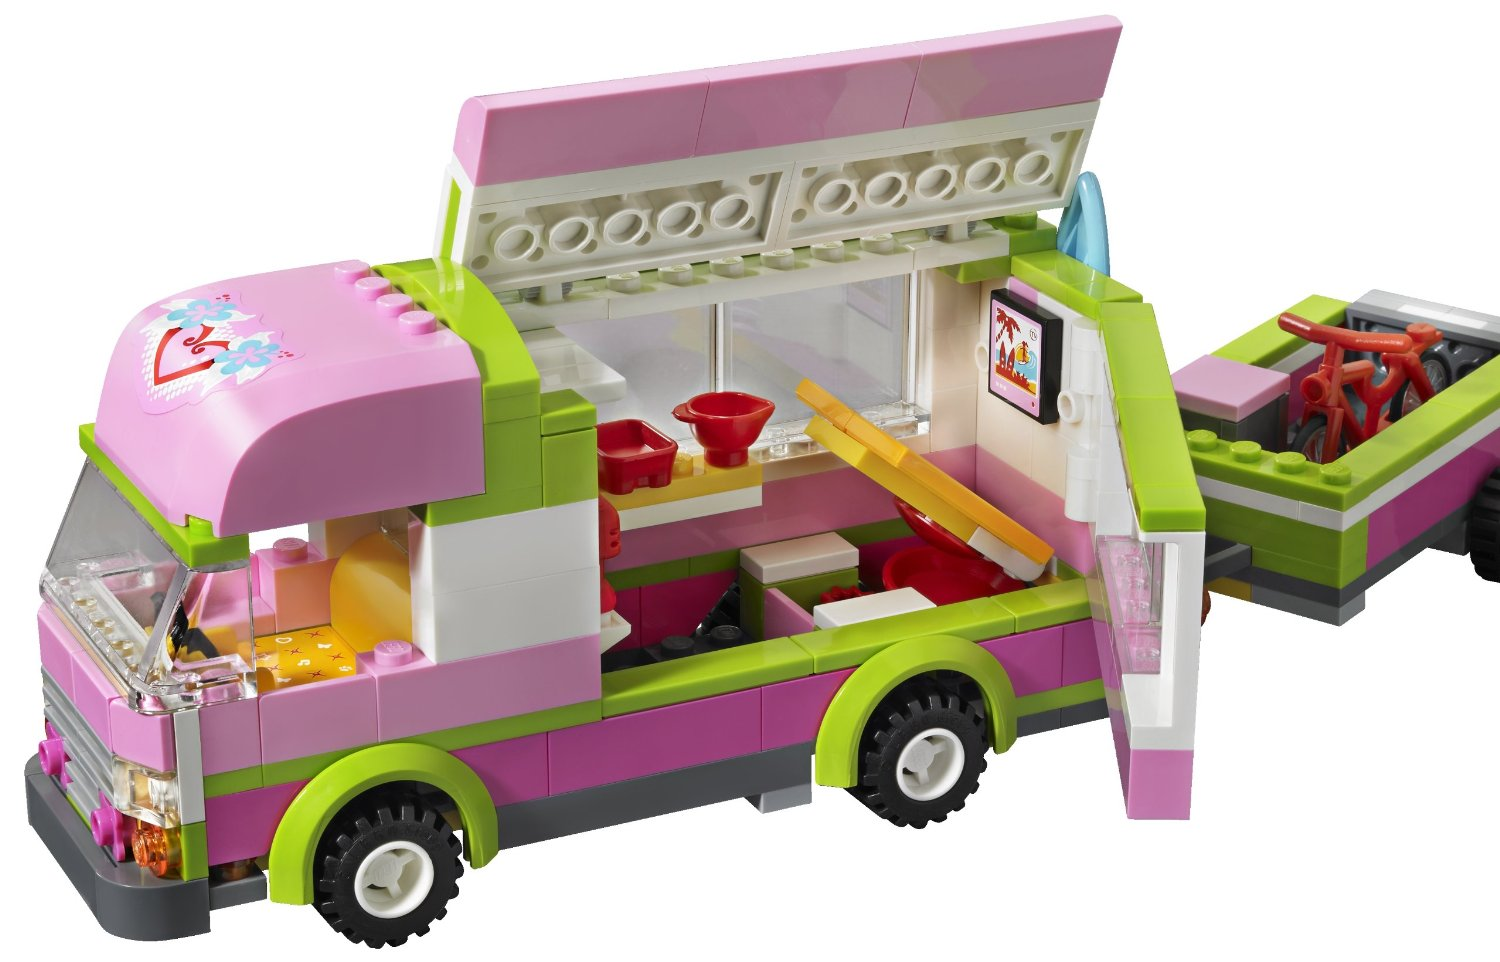 begcanteq item 3077 pre order lego friends 3184 adventure camper. Black Bedroom Furniture Sets. Home Design Ideas